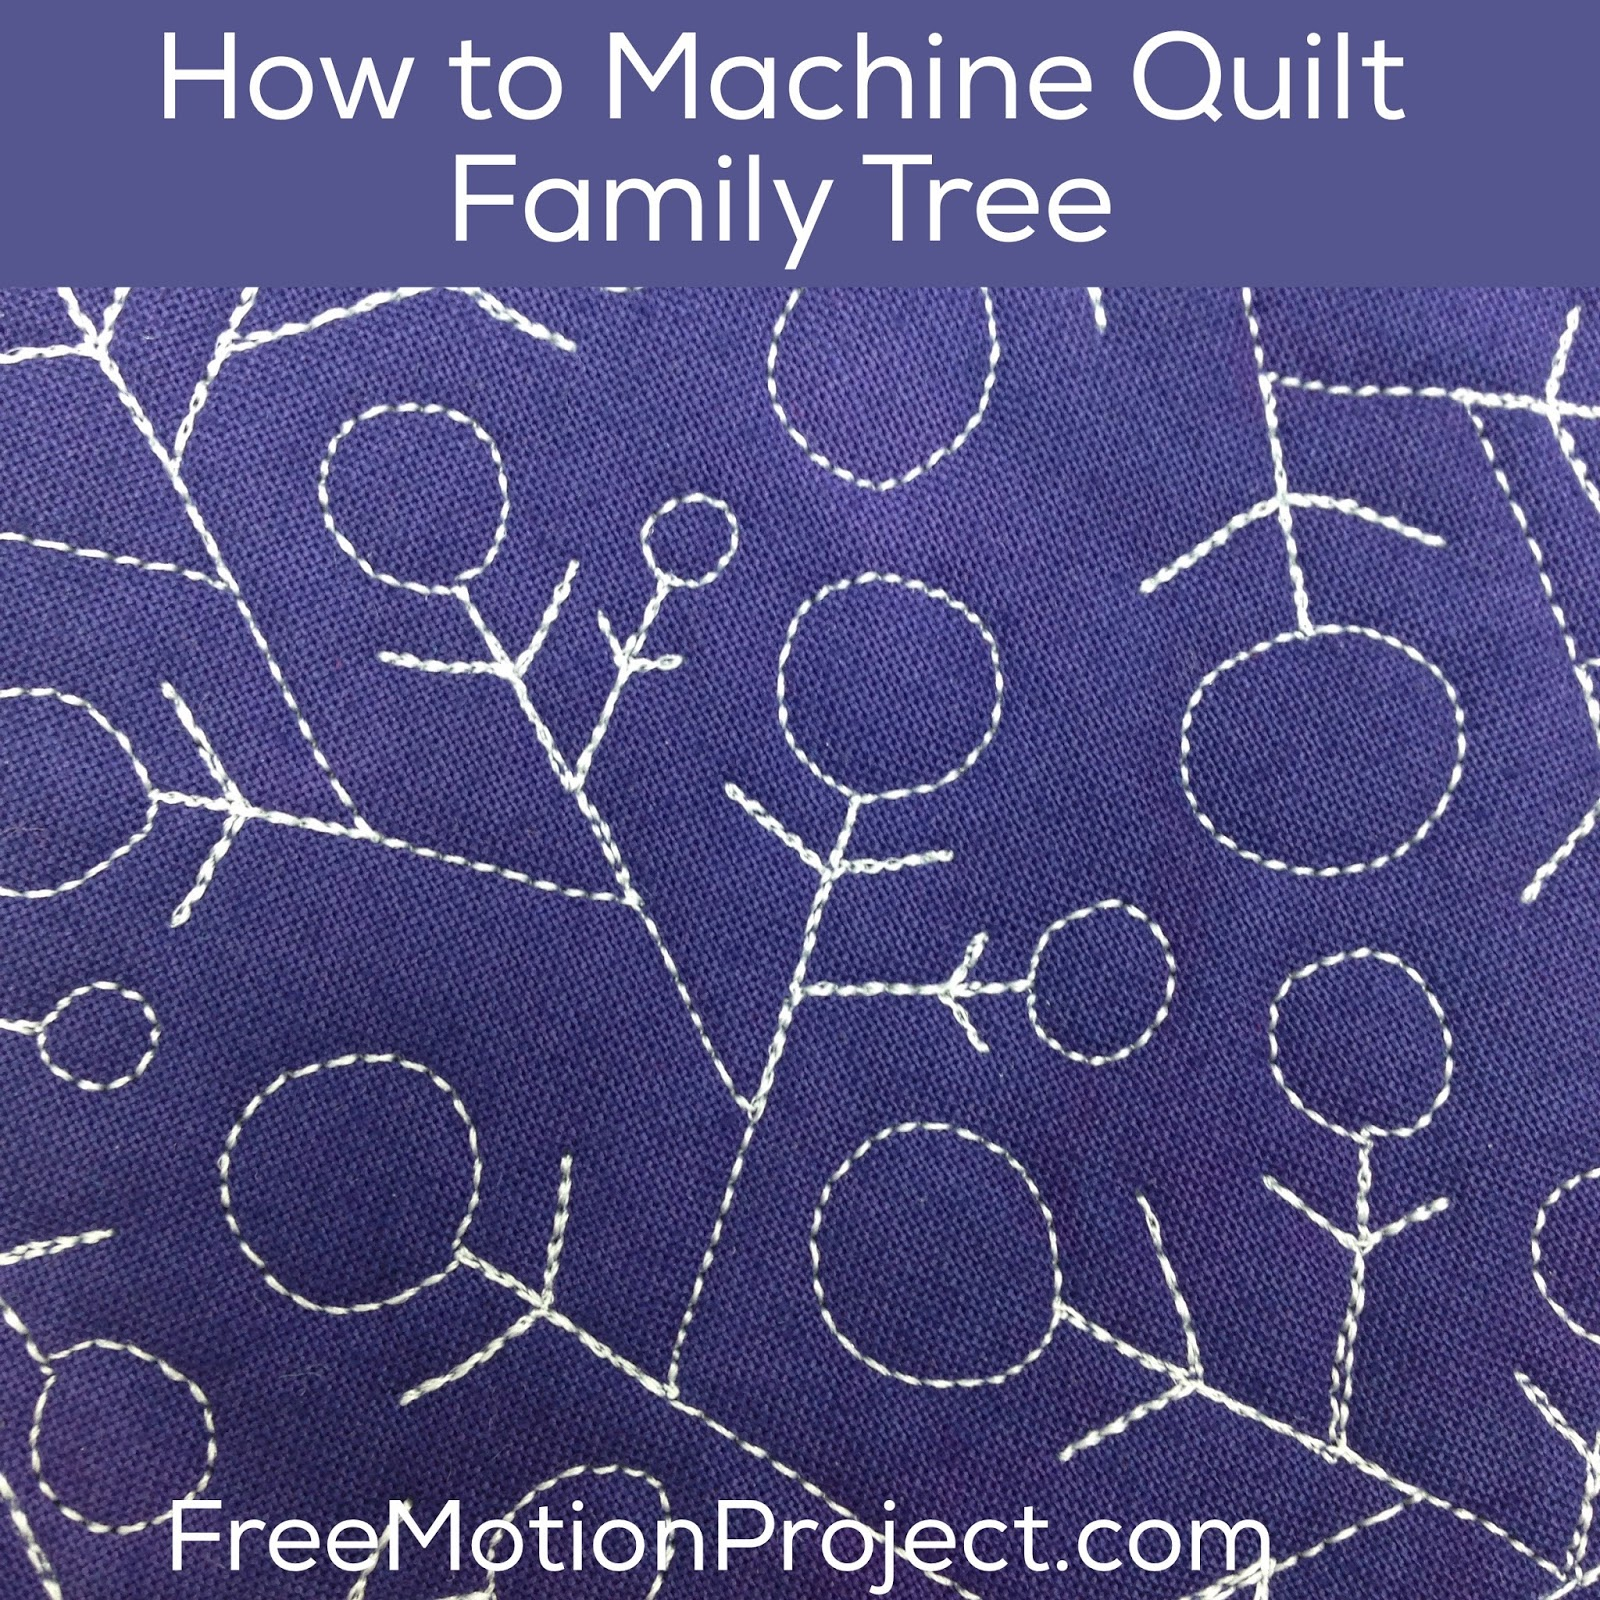 free motion quilting templates - the free motion quilting project machine quilt family